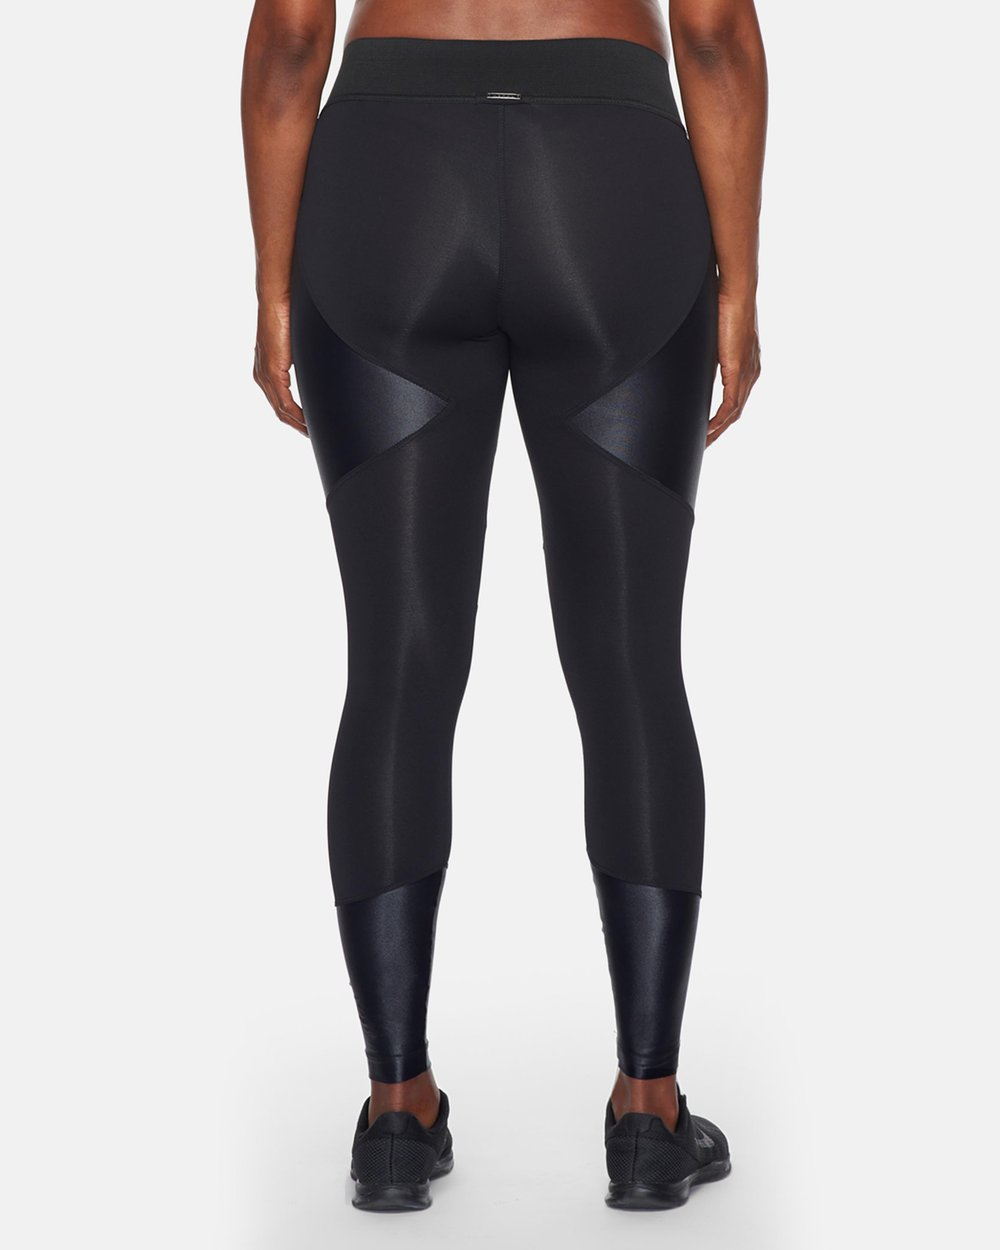 4aca56d4c0a50 Forge Maternity Leggings by Koral Online | THE ICONIC | Australia